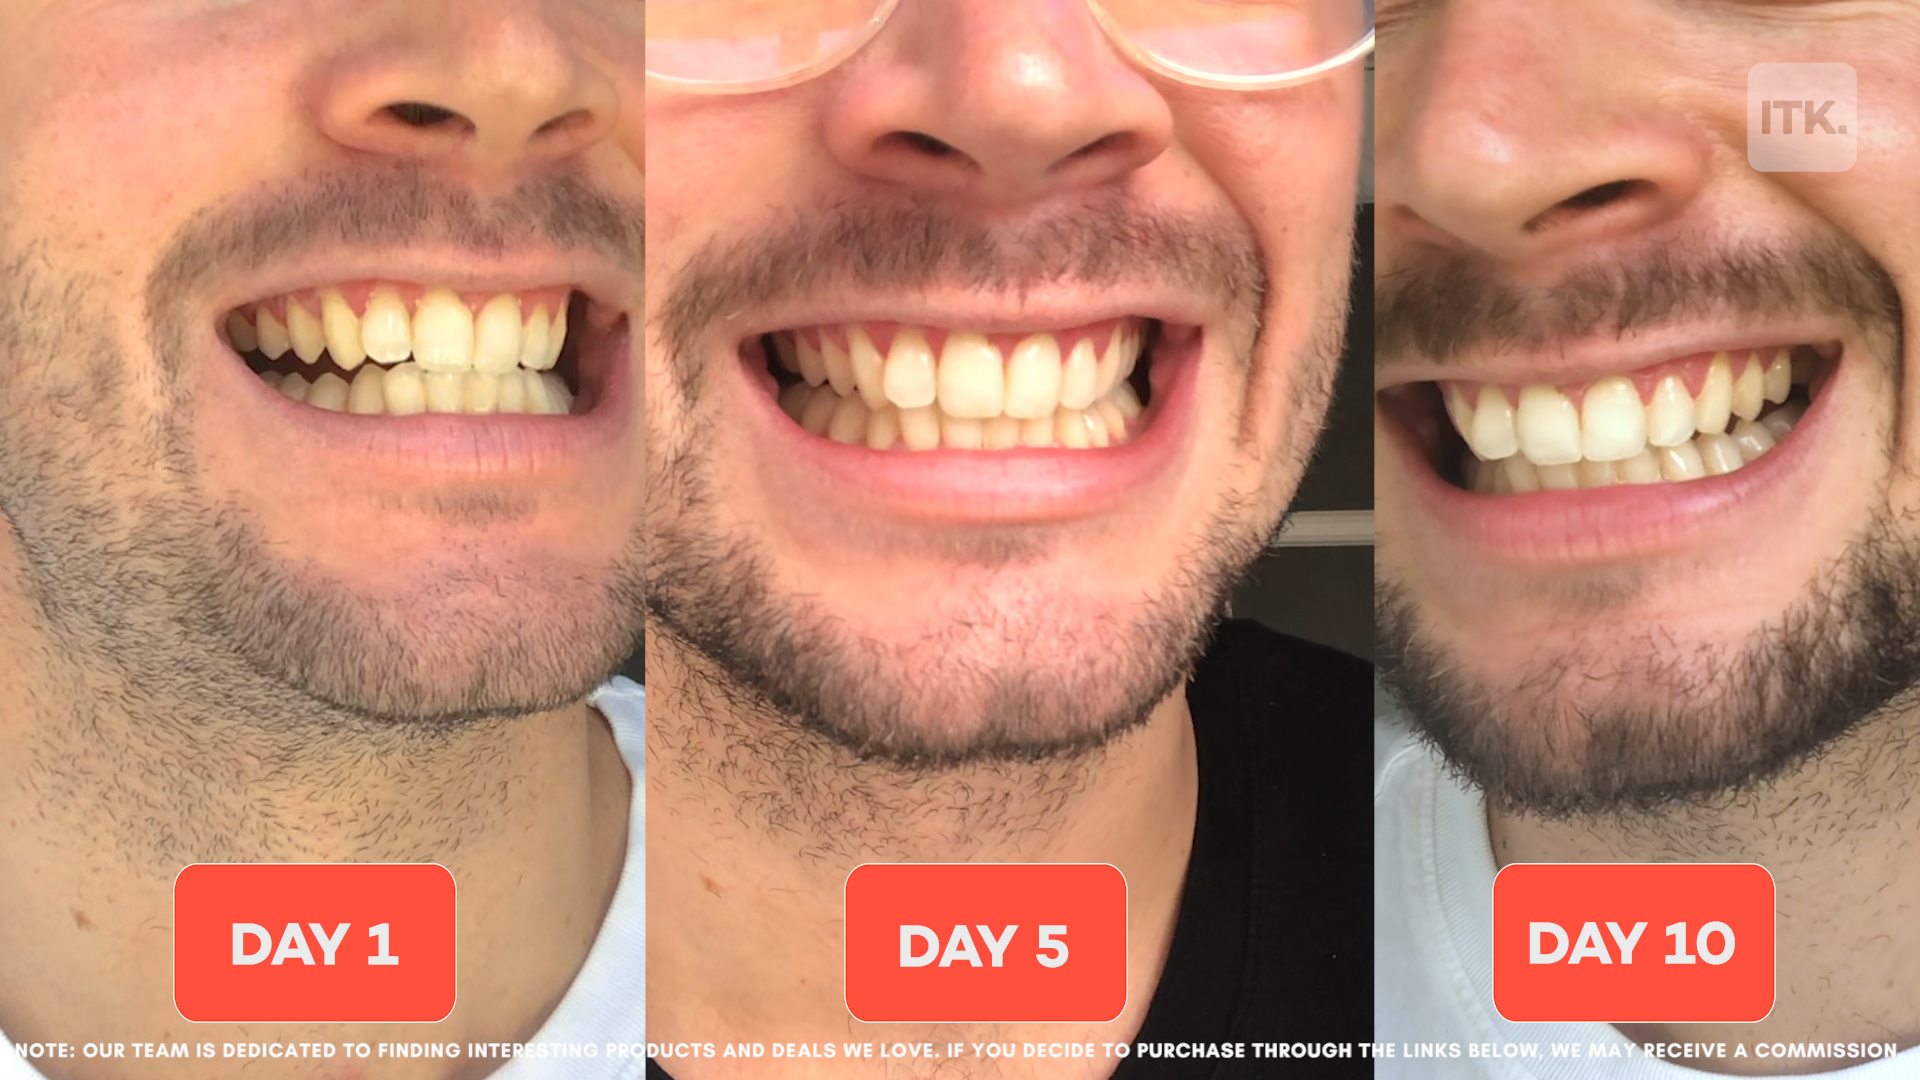 We Tried Colgate S Latest Teeth Whitening Device That Claims To Whiten Teeth By 6 Shades In 10 Days Does It Work